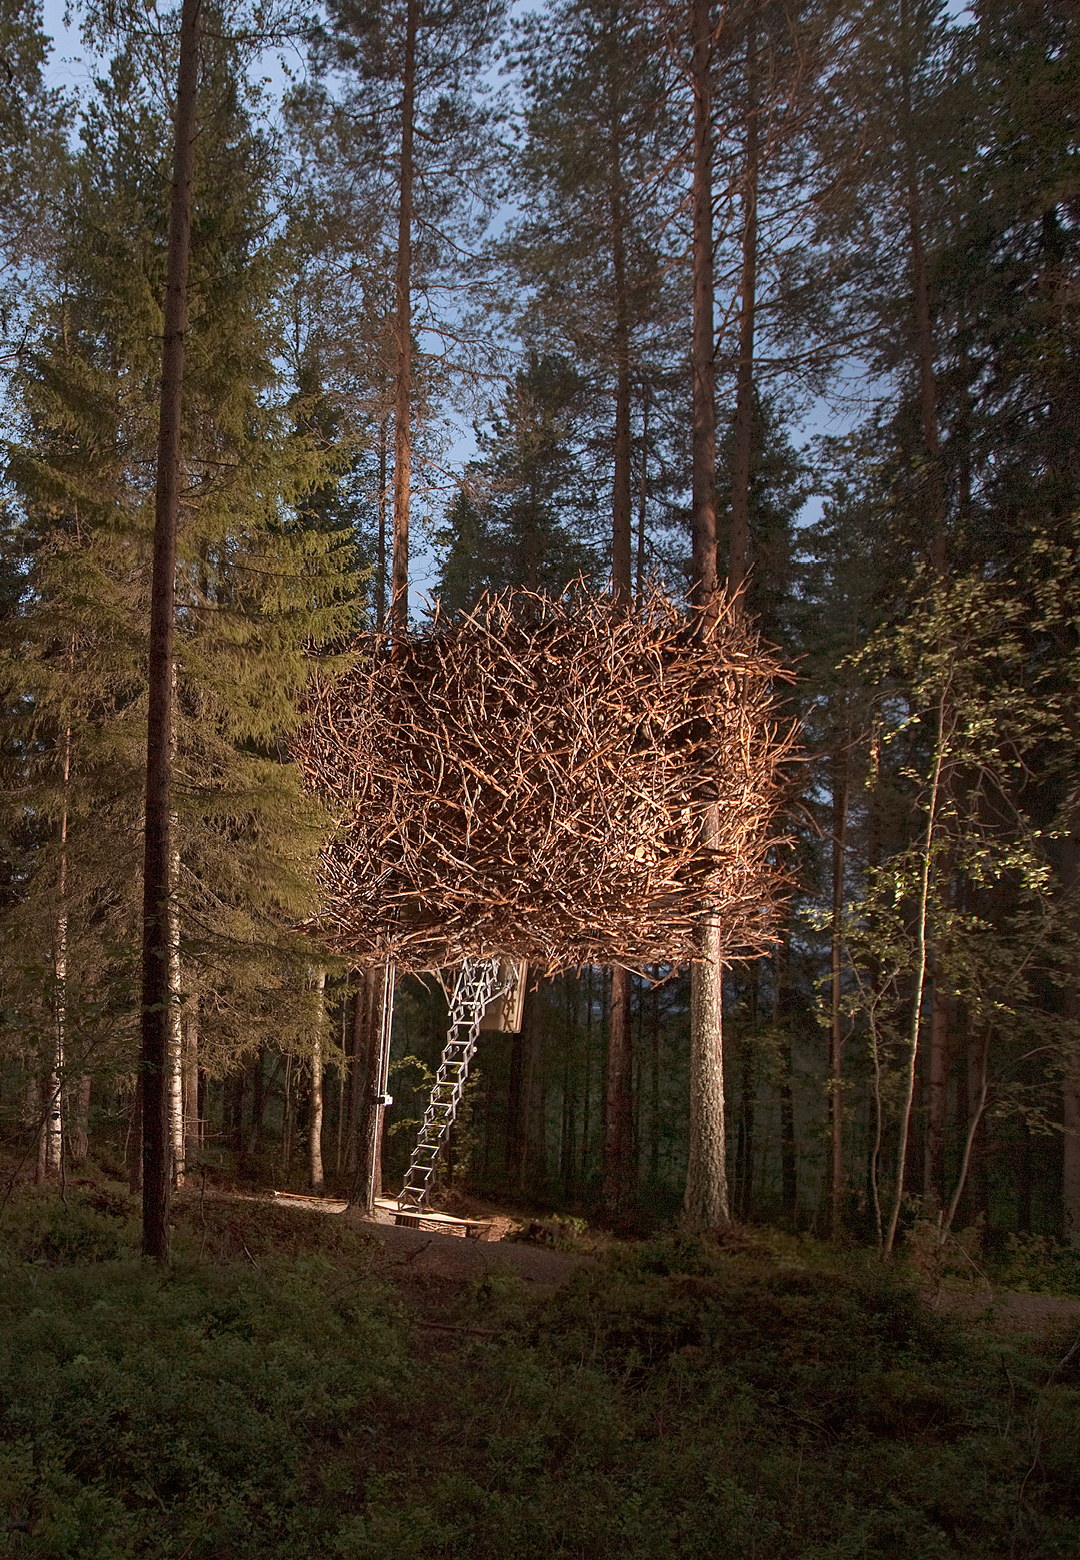 The Bird's Nest was constructed in 2010, by Bertil Harstroem of Inredningsgruppen. It has been designed for four people with one double bed and two single beds | Treehotel | Kent, Britta Lindvall | STIR